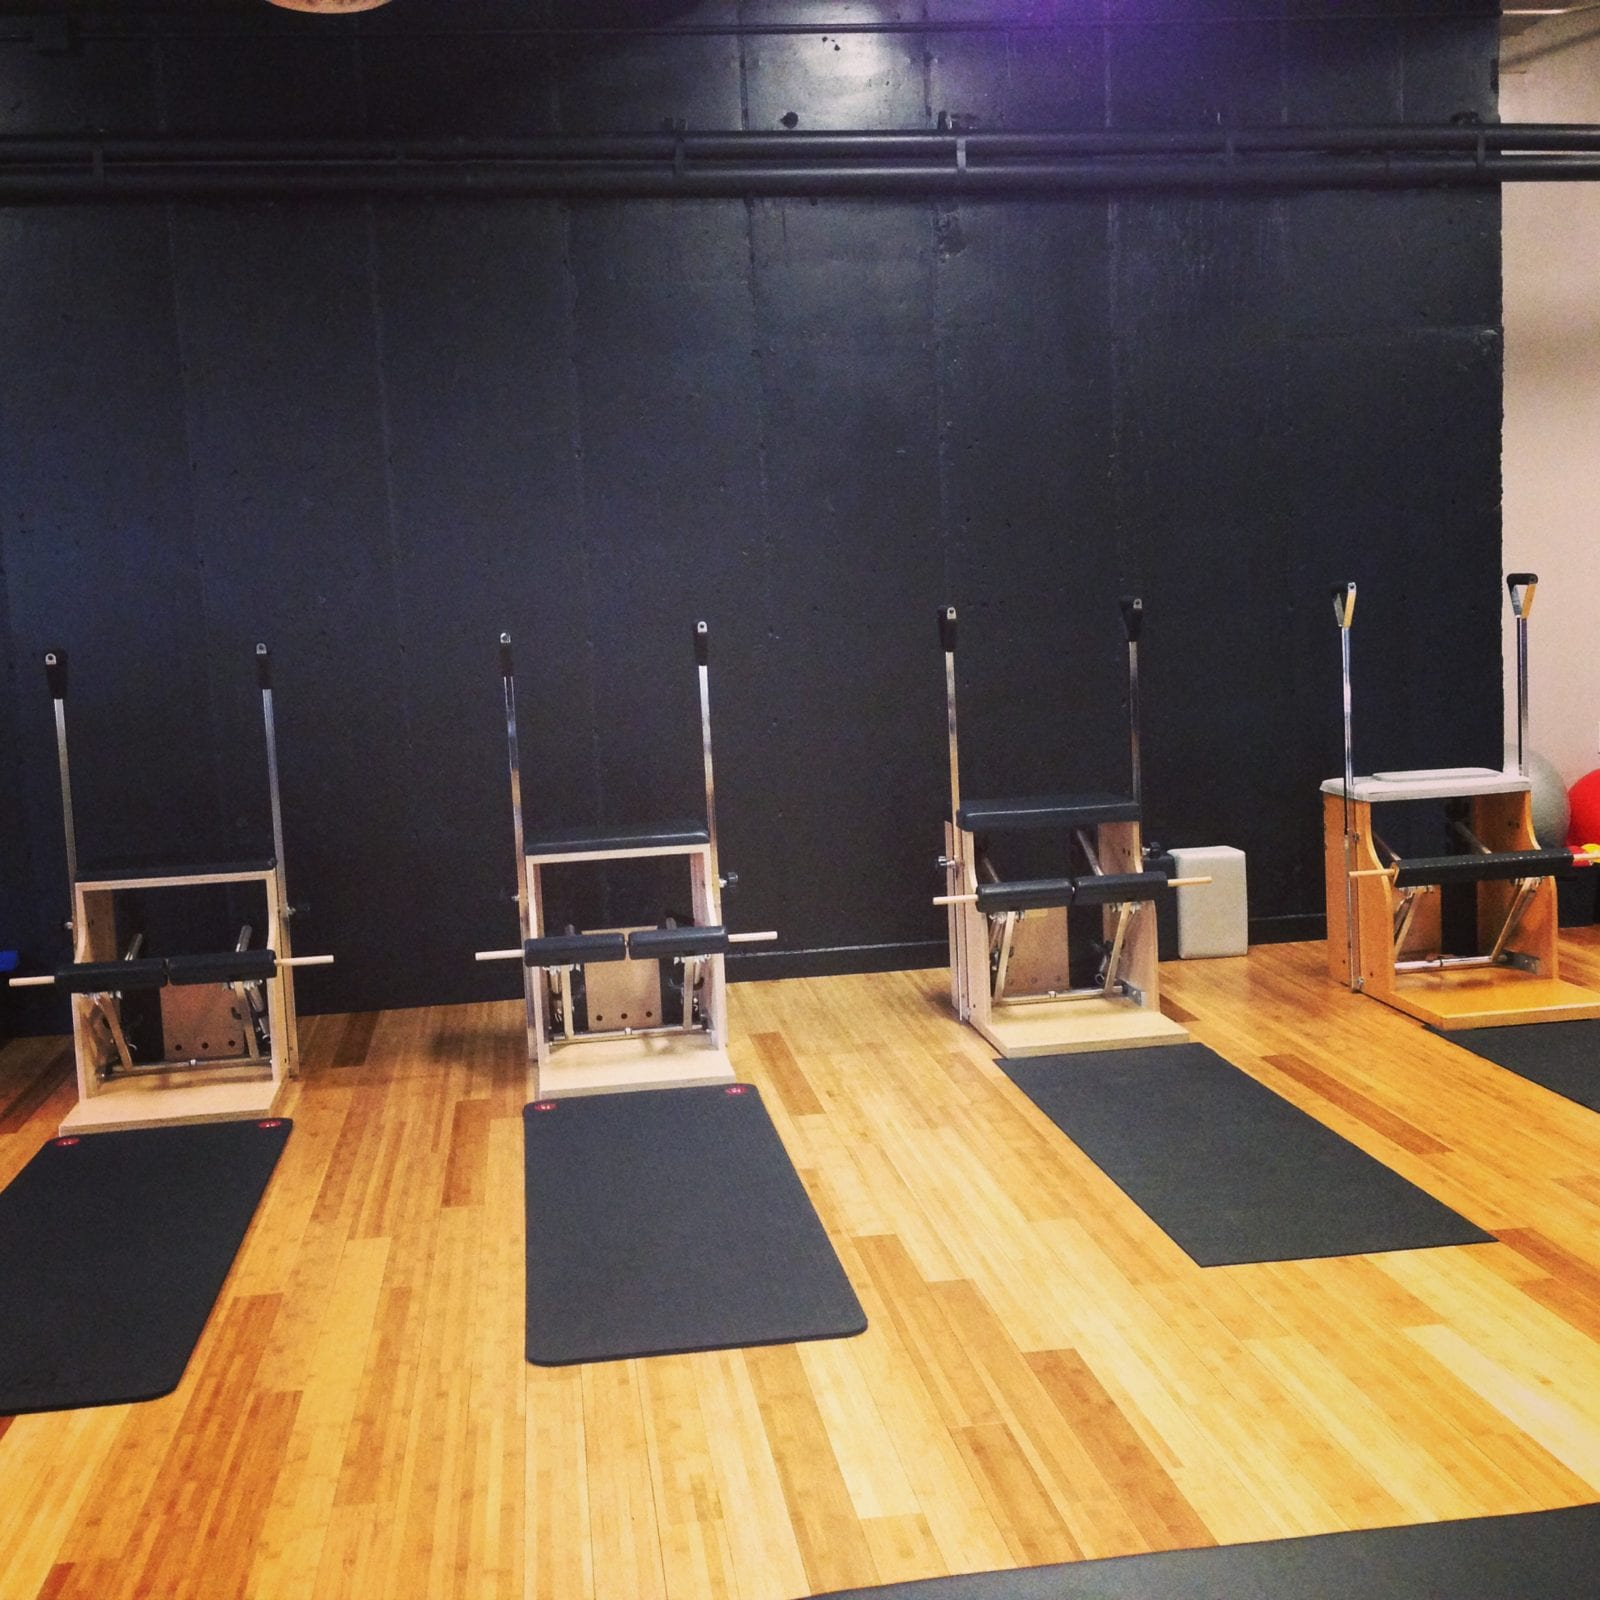 The Best Pilates Chairs: Top 4 Pilates Equipment To Bring Your Workout To The Next